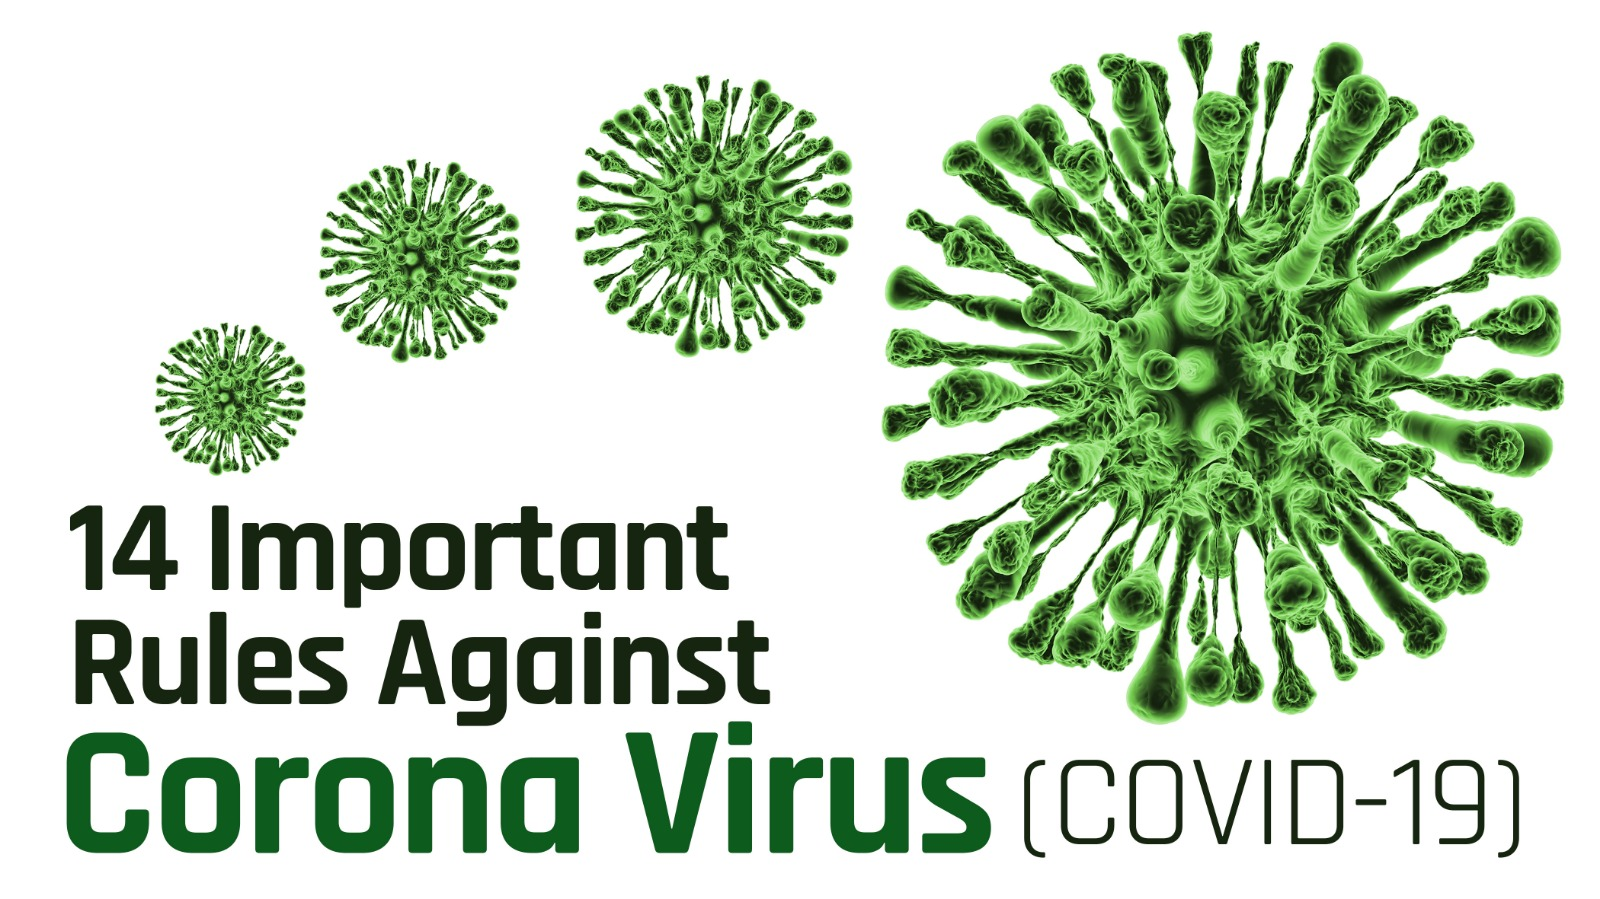 14 Important Rules Against Corona Virus (COVID-19).